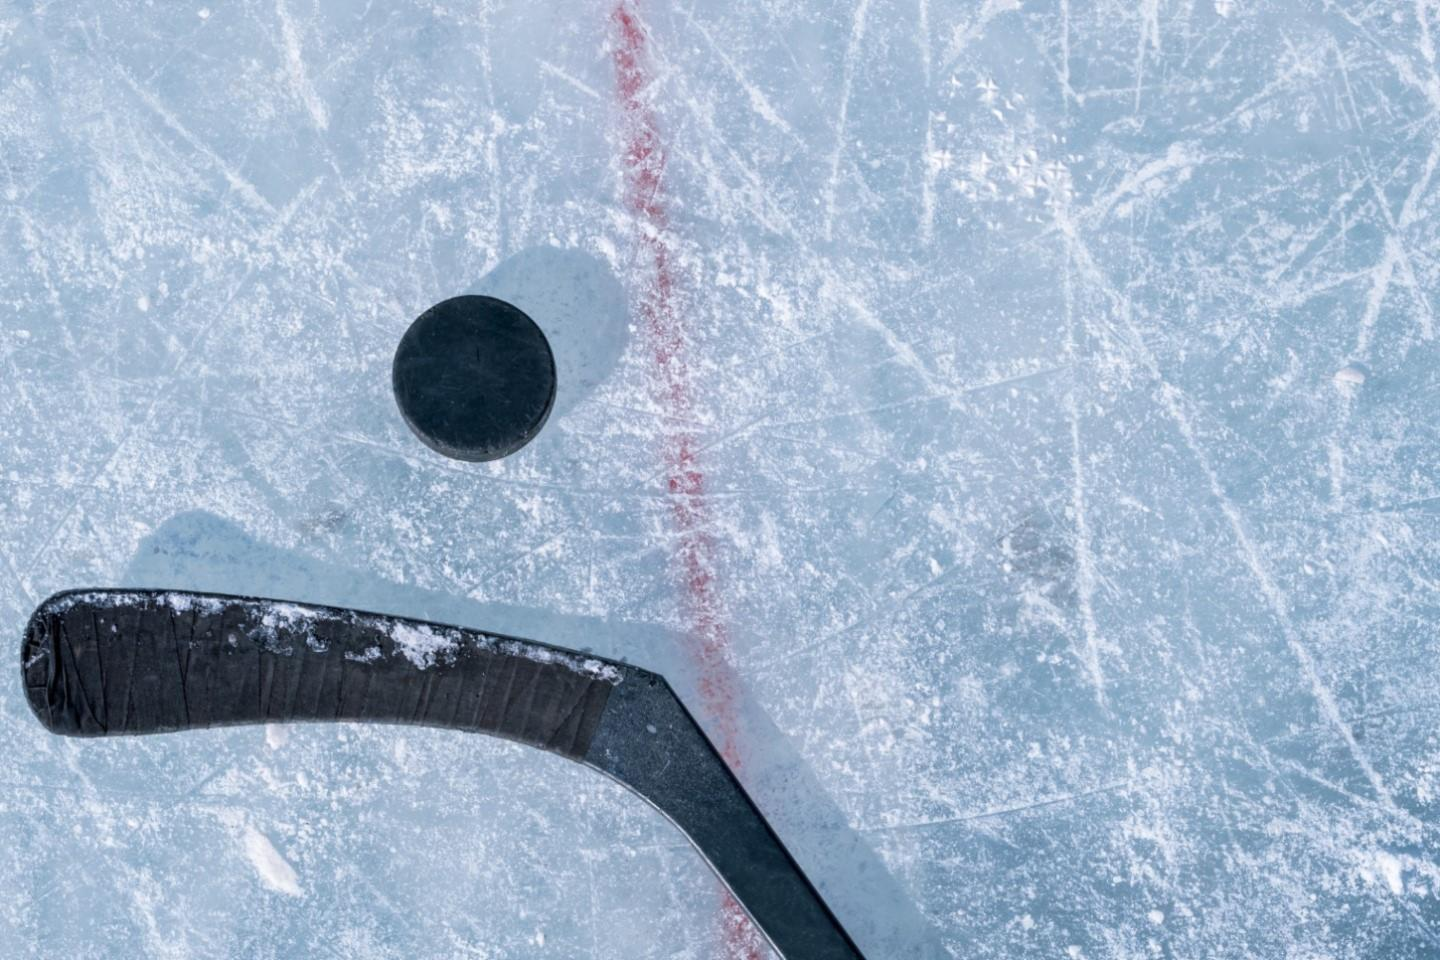 Toronto Maple Leafs Tickets Buy Or Sell Toronto Maple Leafs 2020